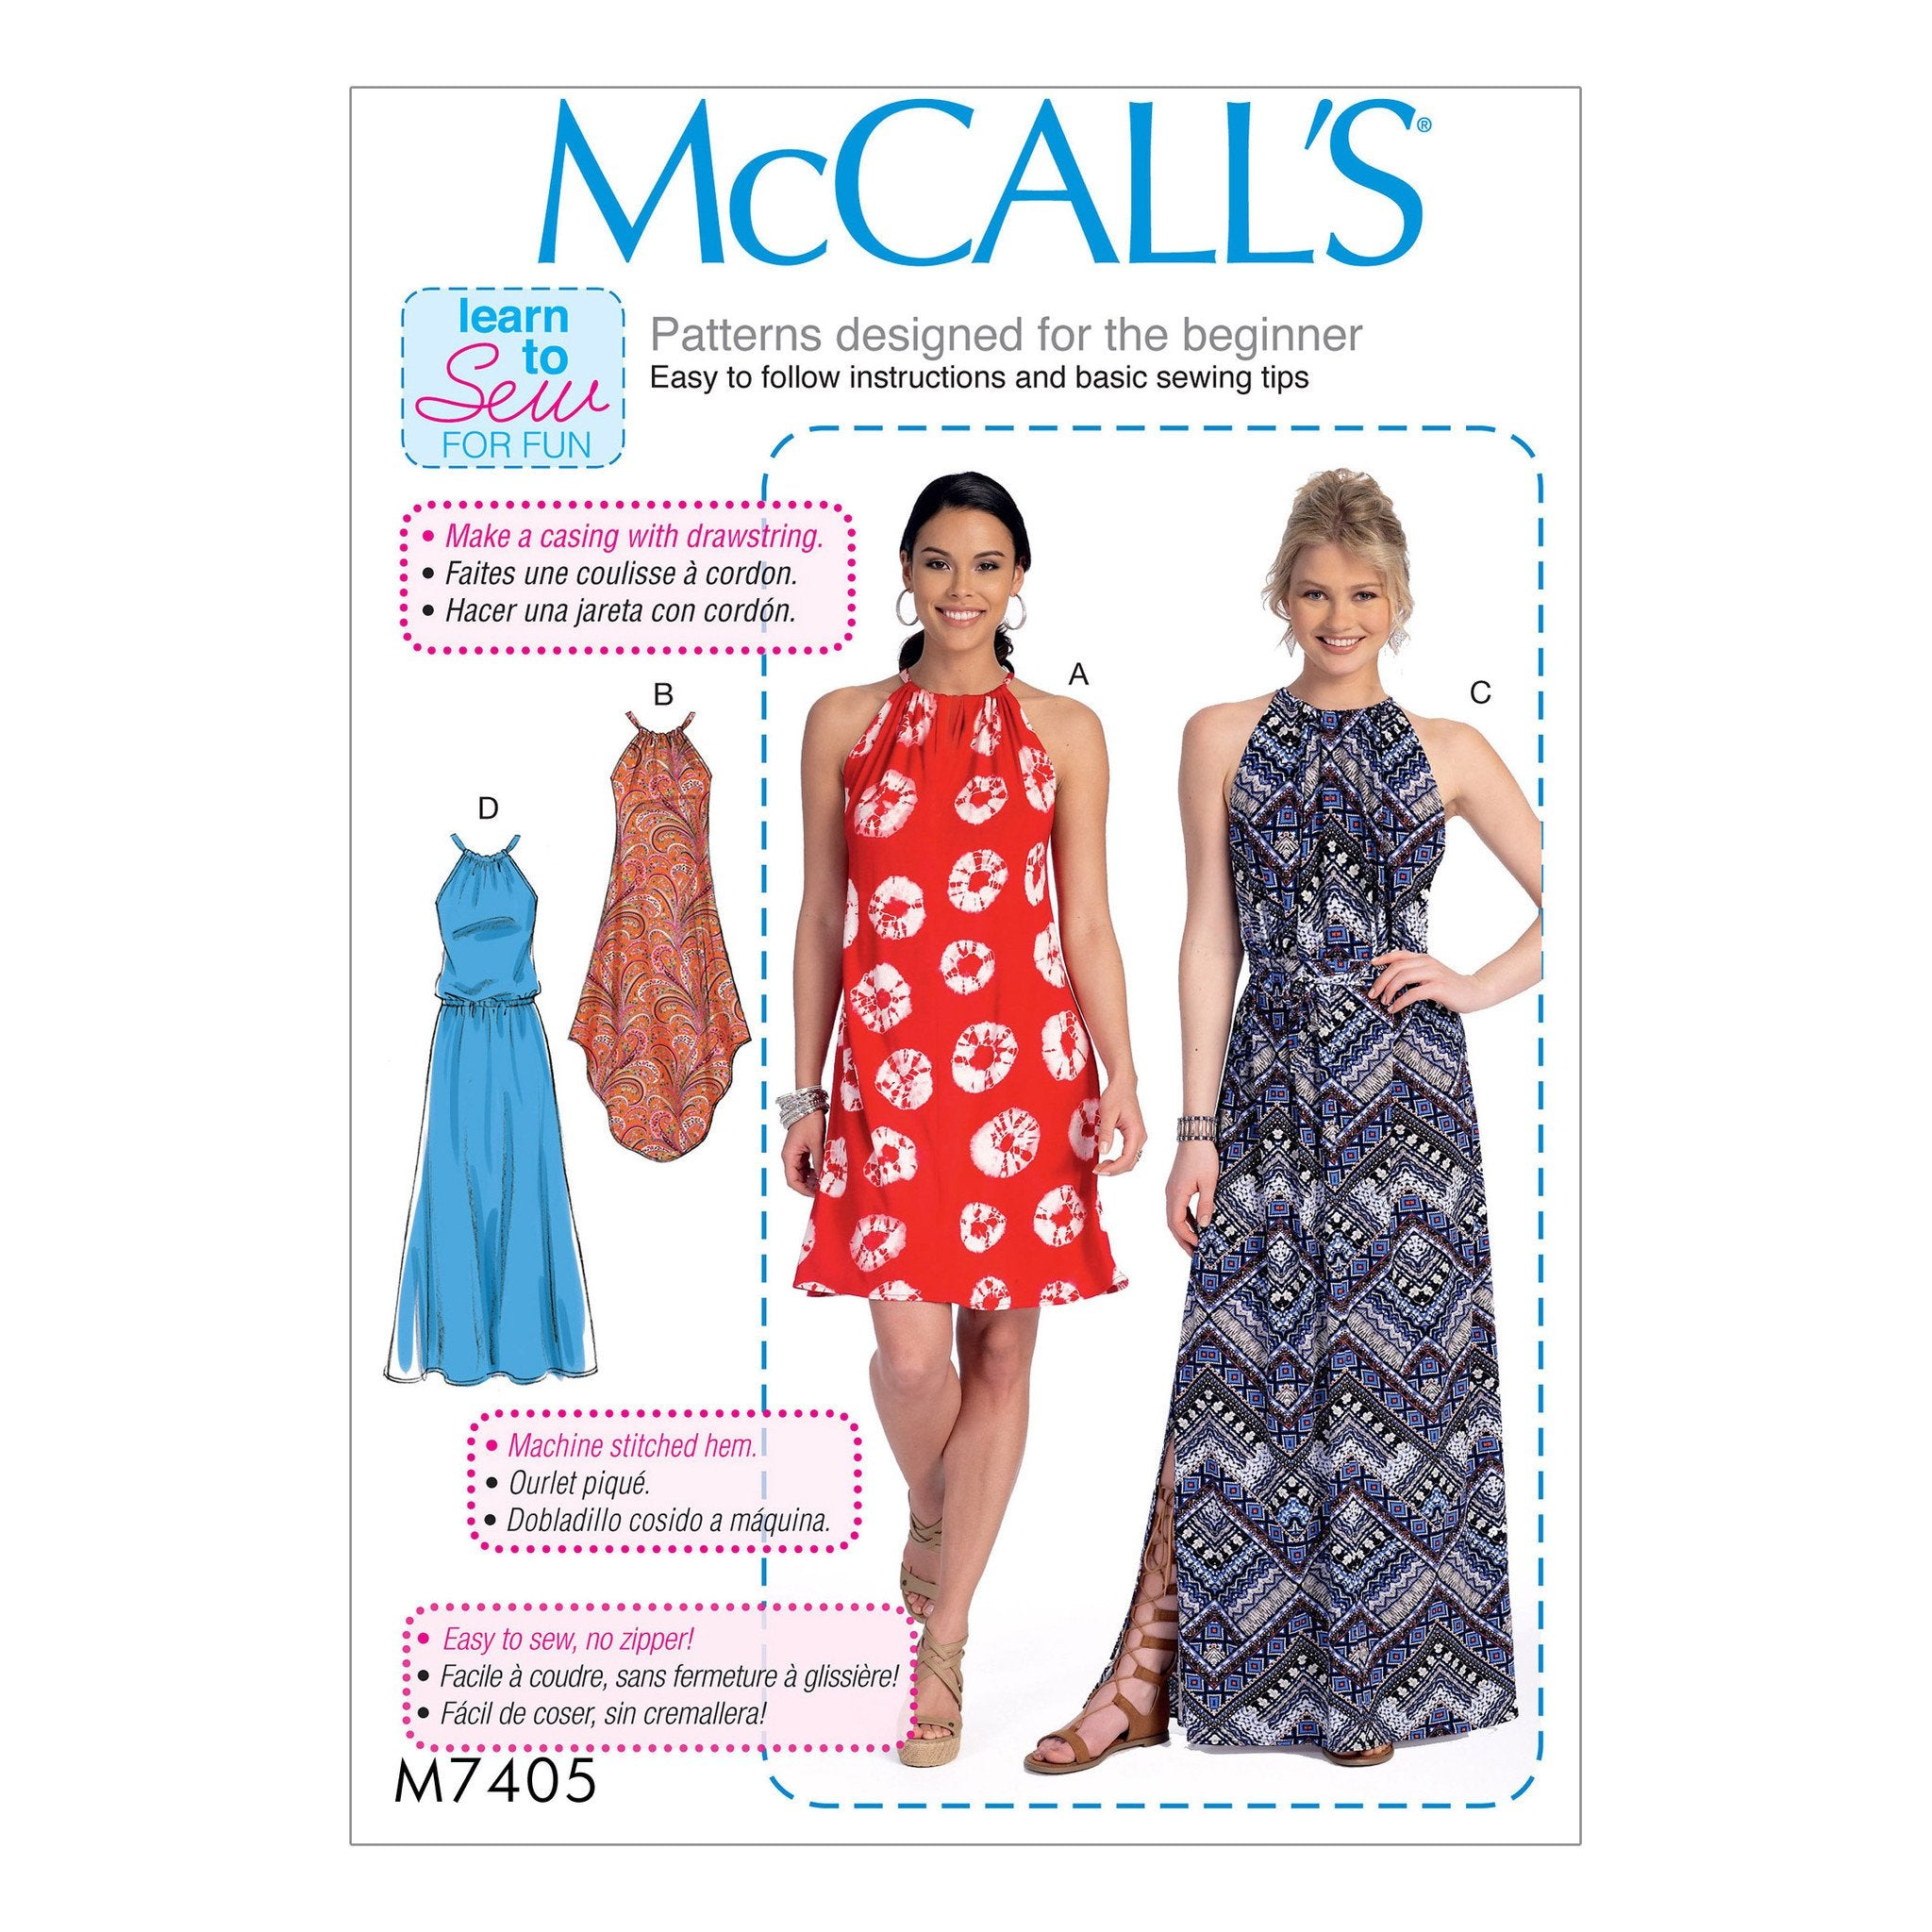 M7405 Dresses and belt McCalls pattern